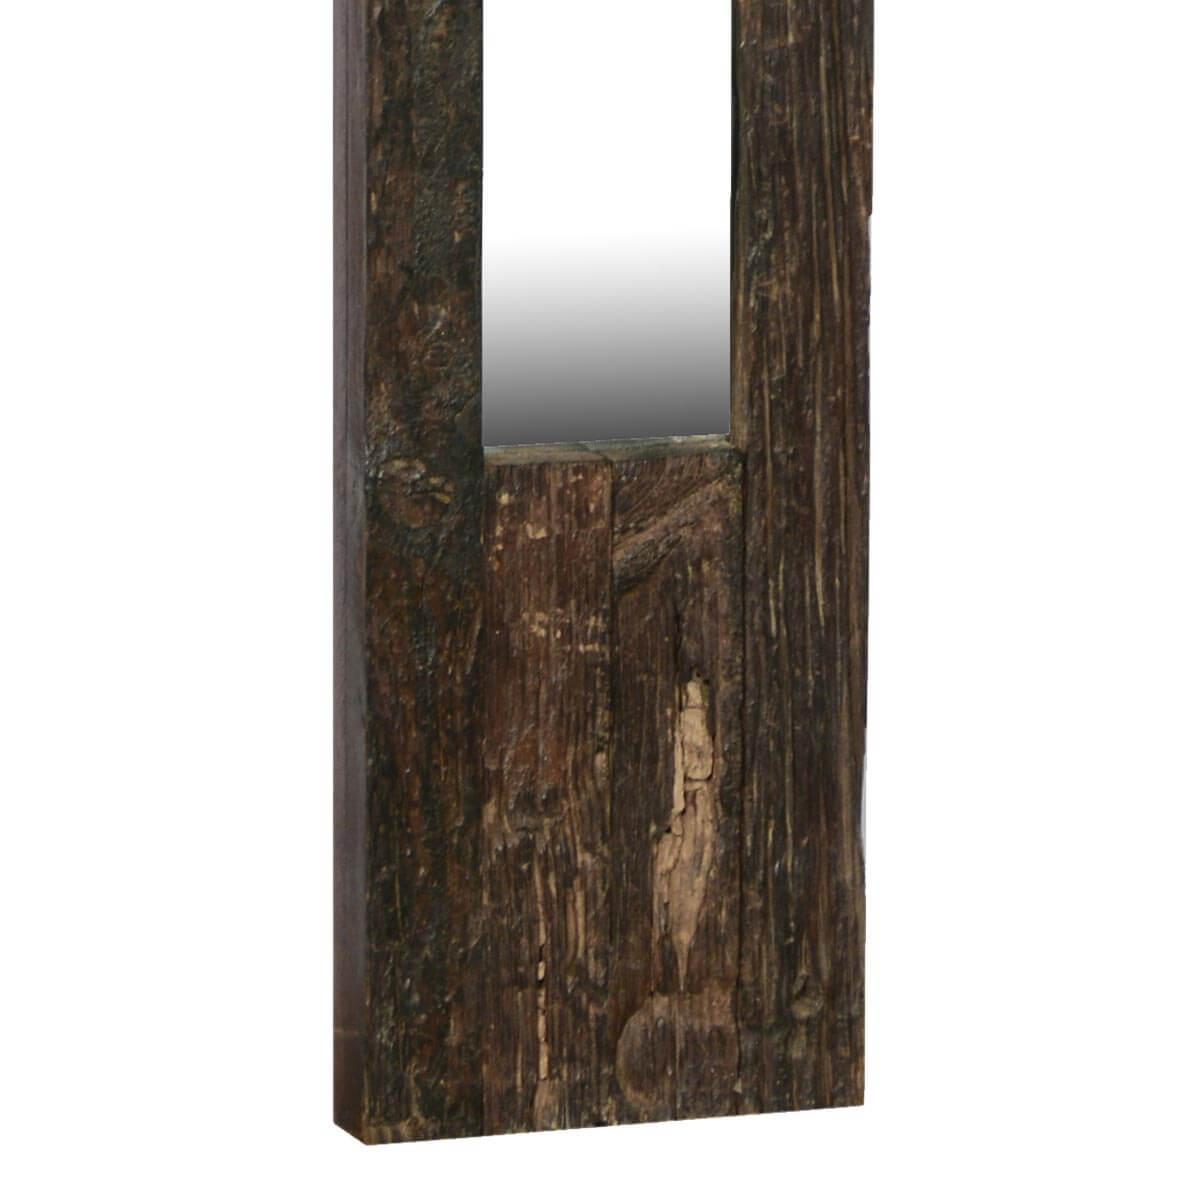 Rustic farmhouse reclaimed wood handmade 53 long wall mirror for Rustic mirror